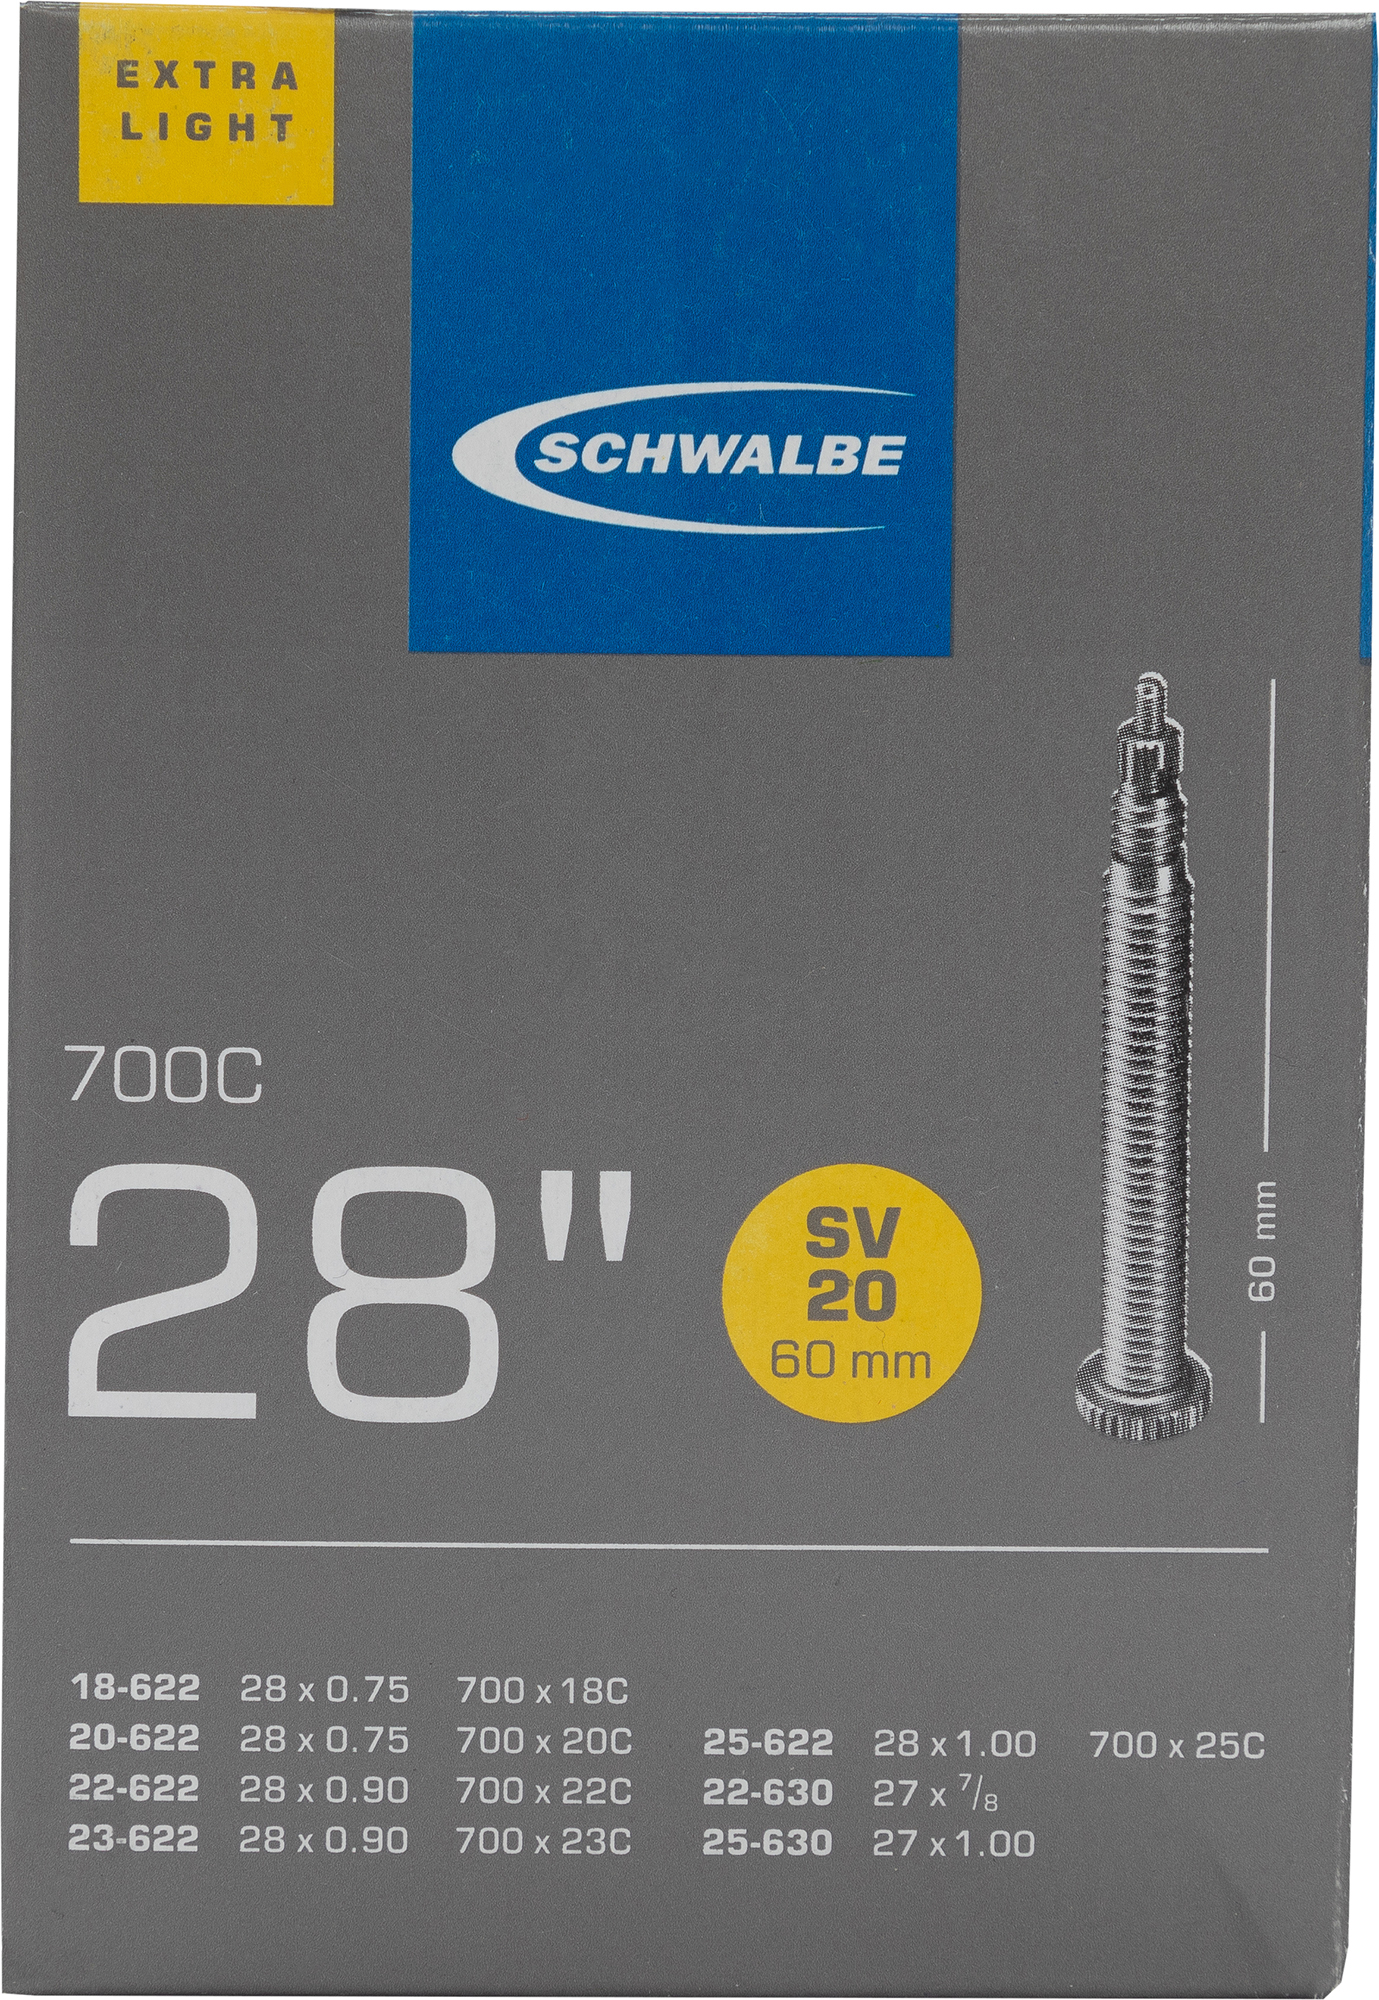 Schwalbe Камера Schwalbe SV20 EXTRA LIGHT 60mm 28